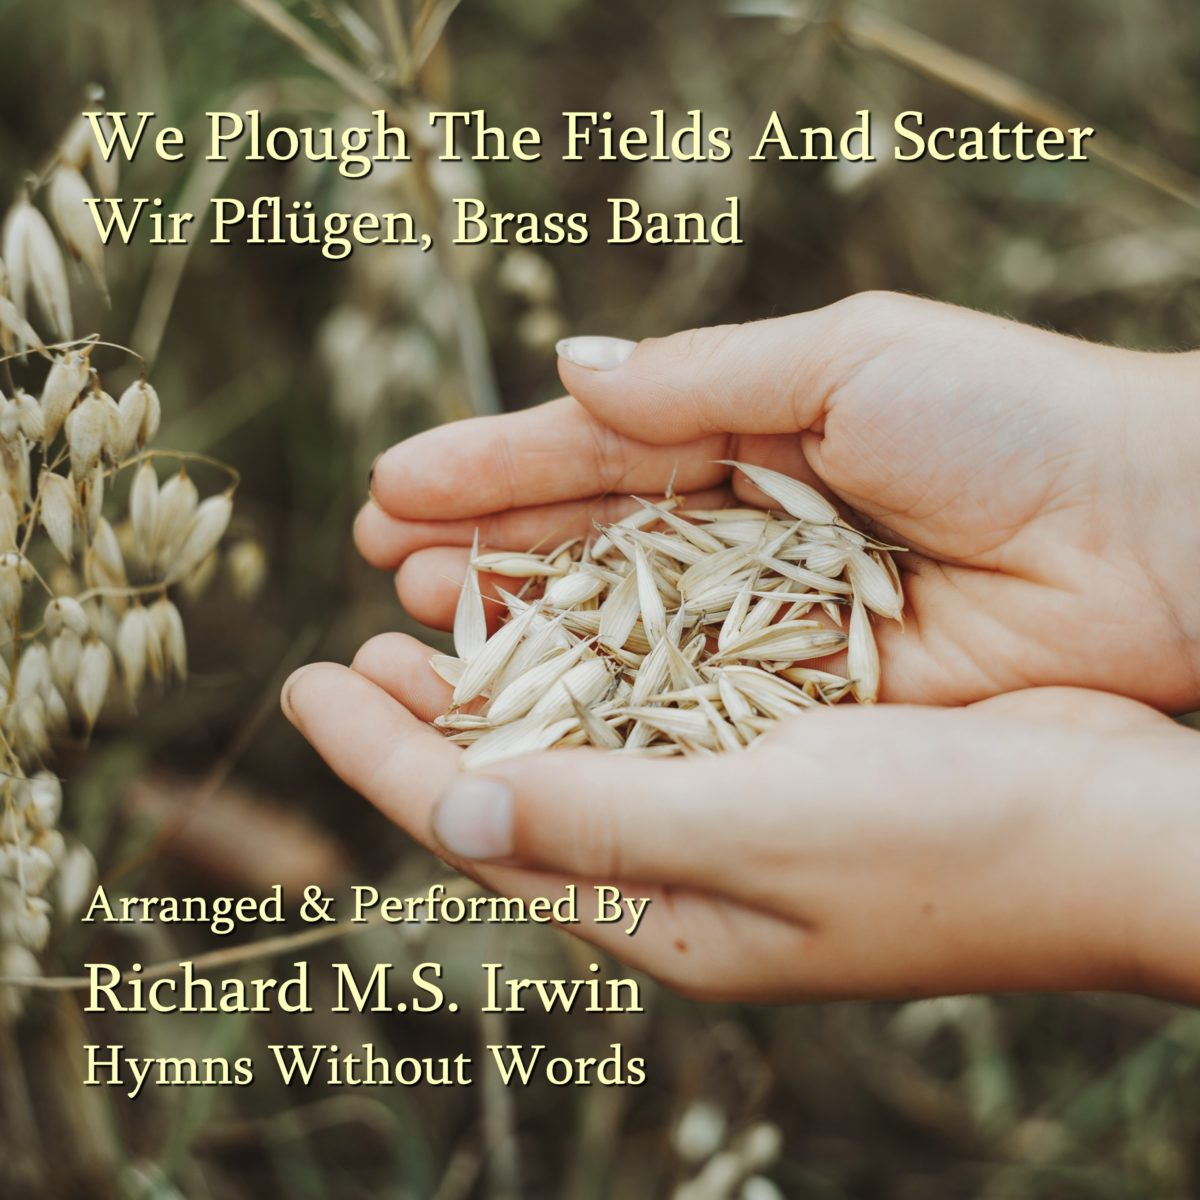 We Plough The Fields And Scatter (Wir Pflügen – 3 Verses) – Brass Band